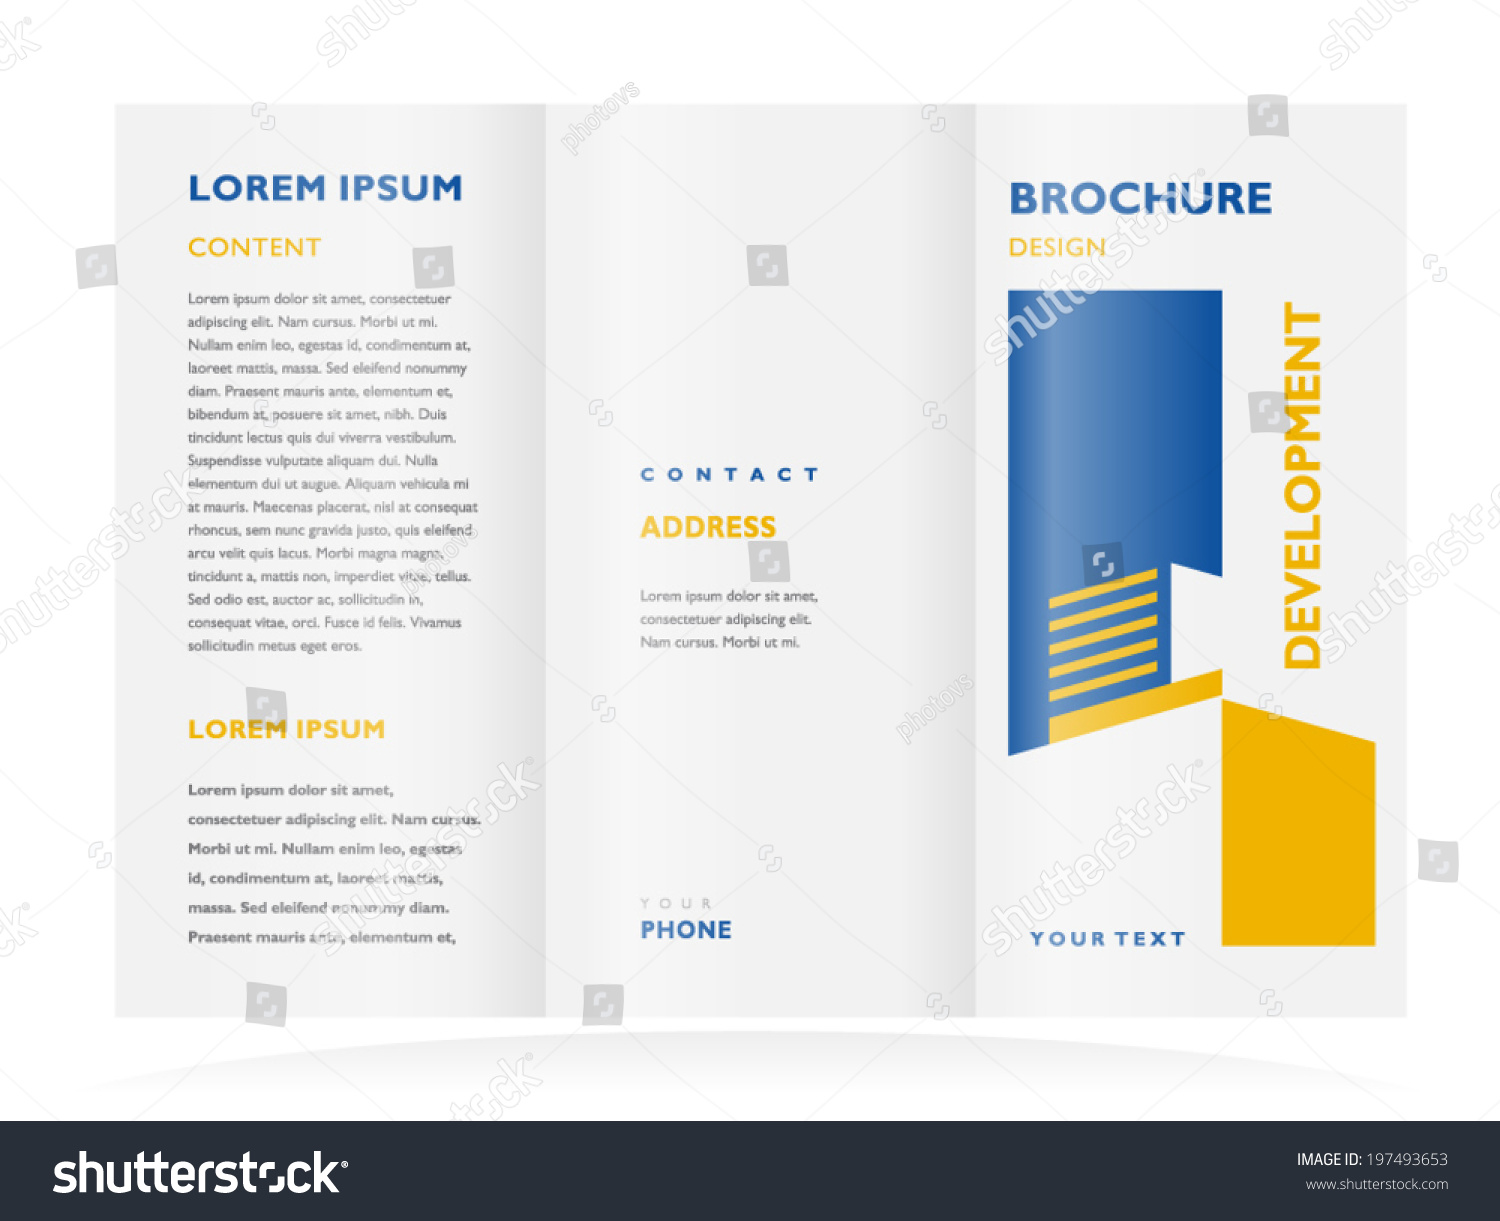 Magnificent 1 Inch Button Template Thick 100 Free Resume Templates Flat 13b Porting Templates 15 Minute Schedule Template Young 16th Birthday Invitation Templates Bright2 Page Resume Ok Template Development   Vosvete